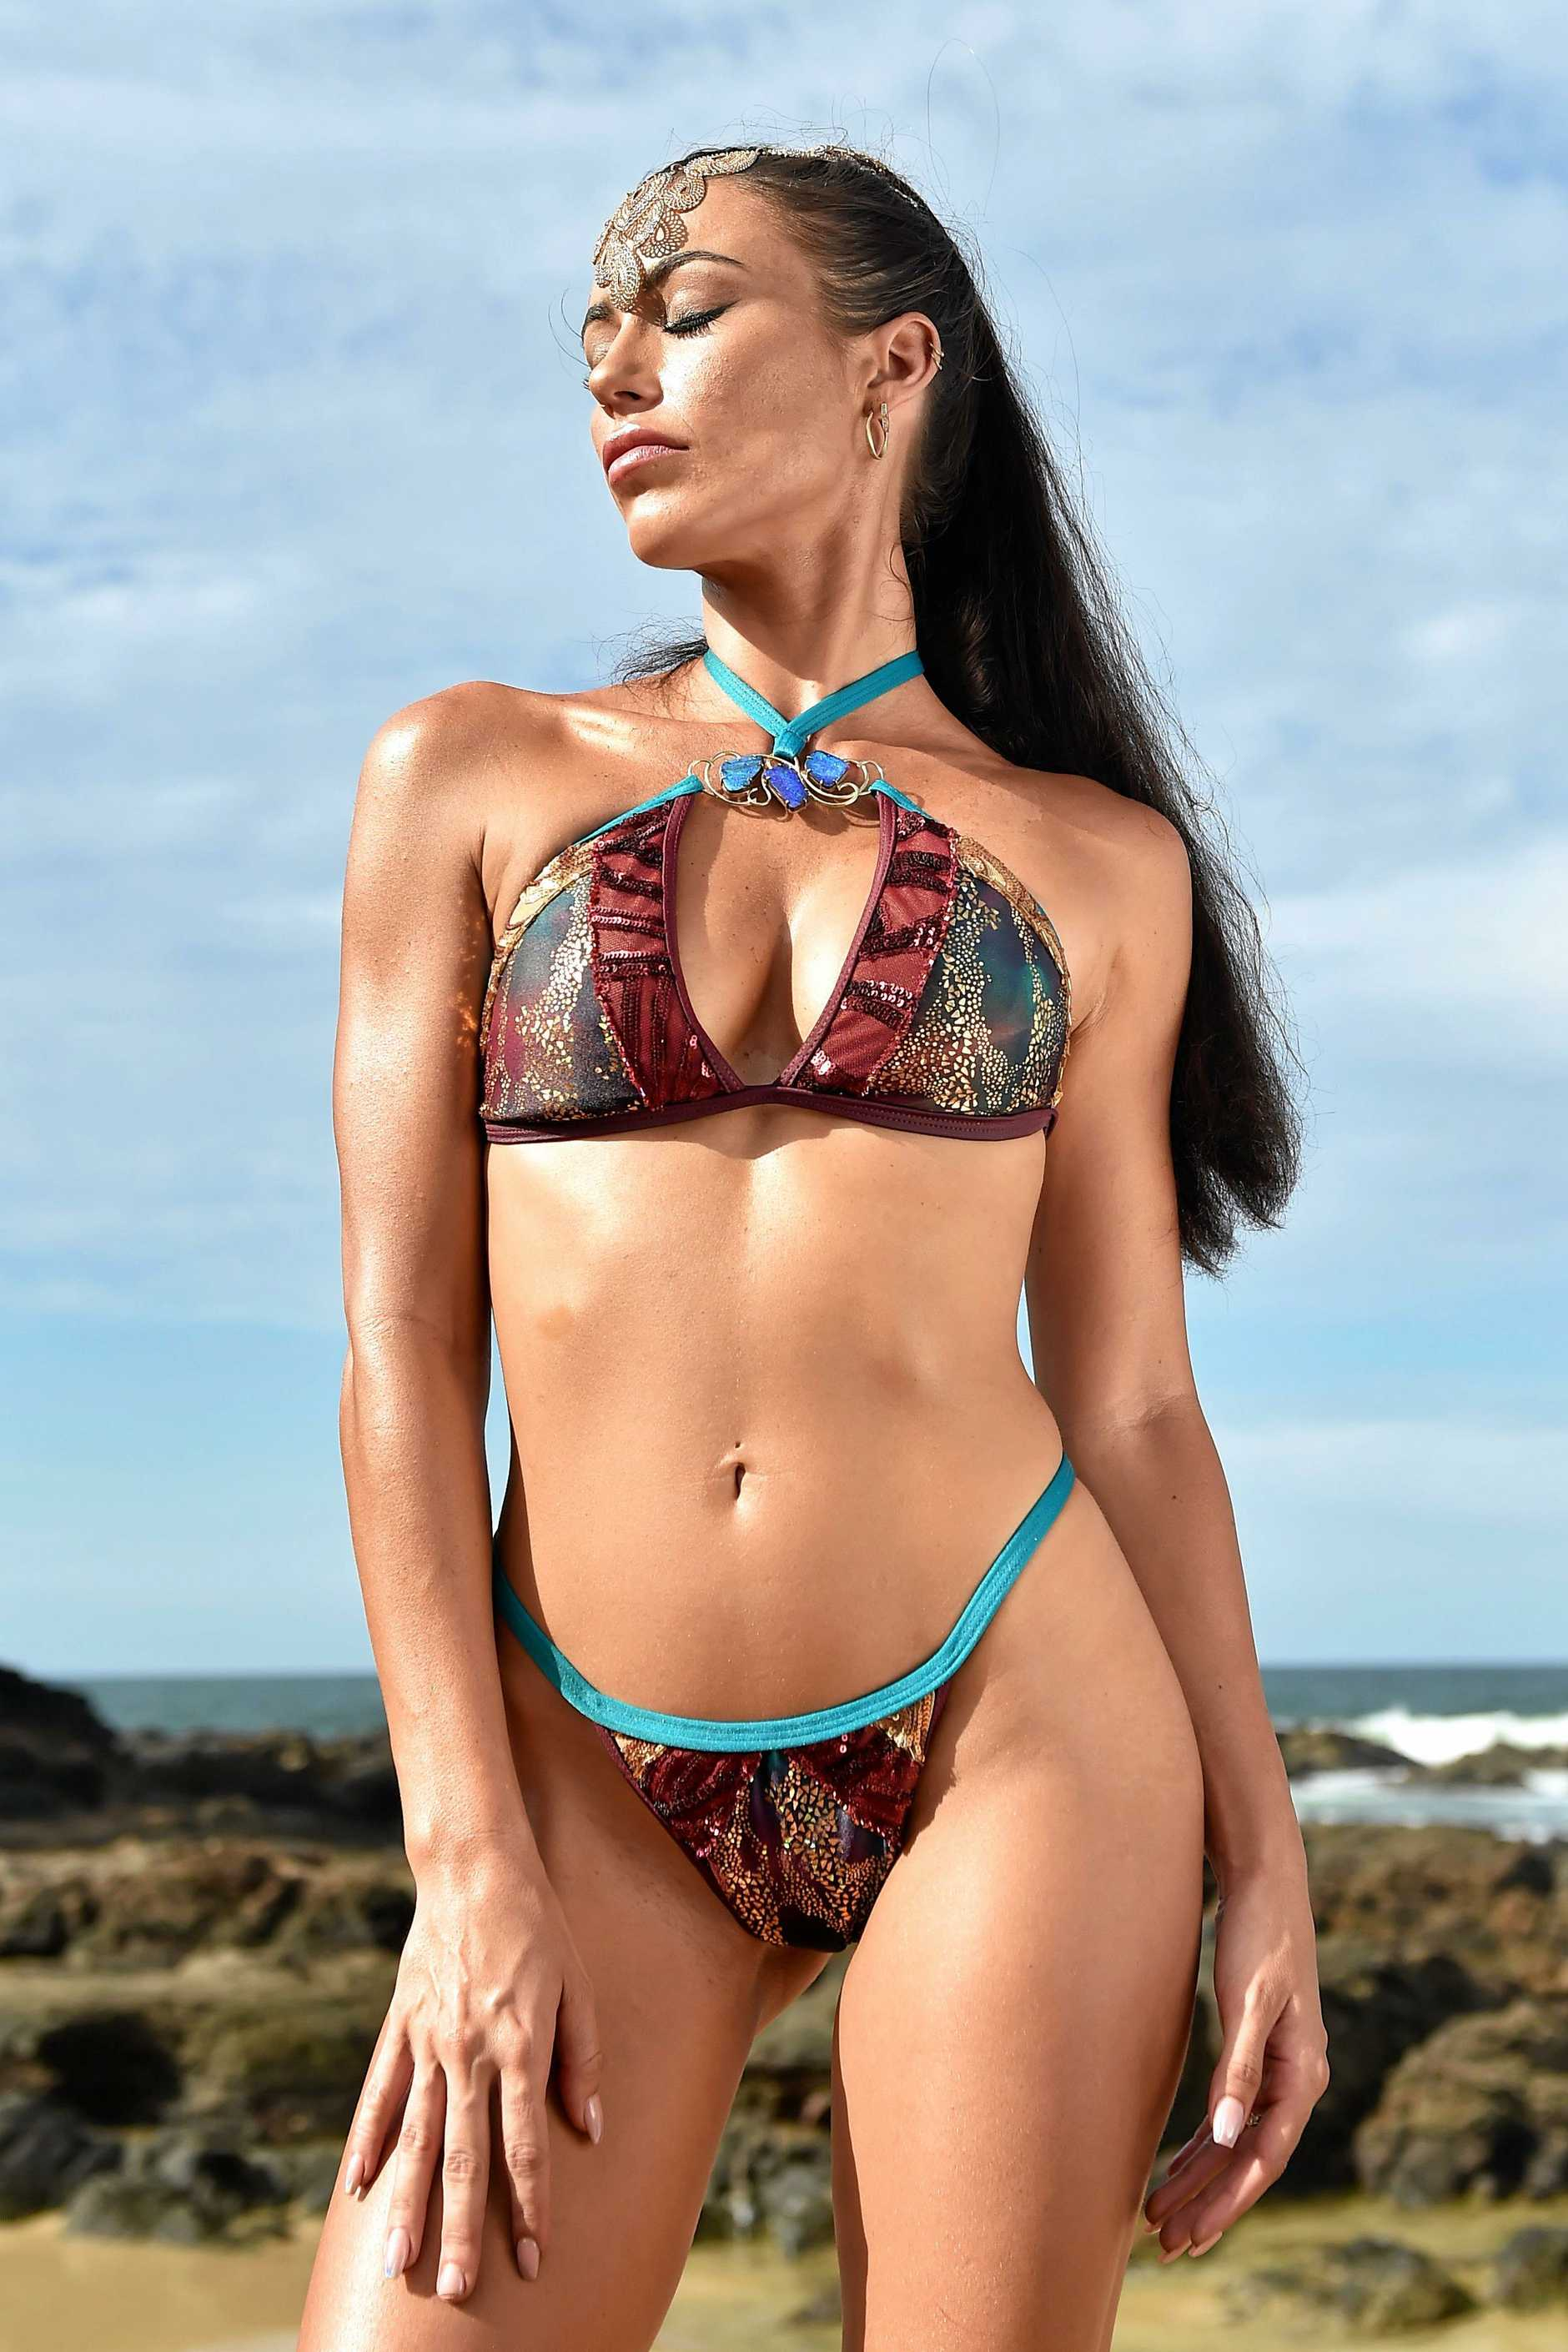 Swimsuit model and mental health advocate Melanie Bragg modelling the $35,000 OPAL bikini by Veve Swimwear designer Vanessa Bryce teamed with local jewellery designer Vanessa Nock.